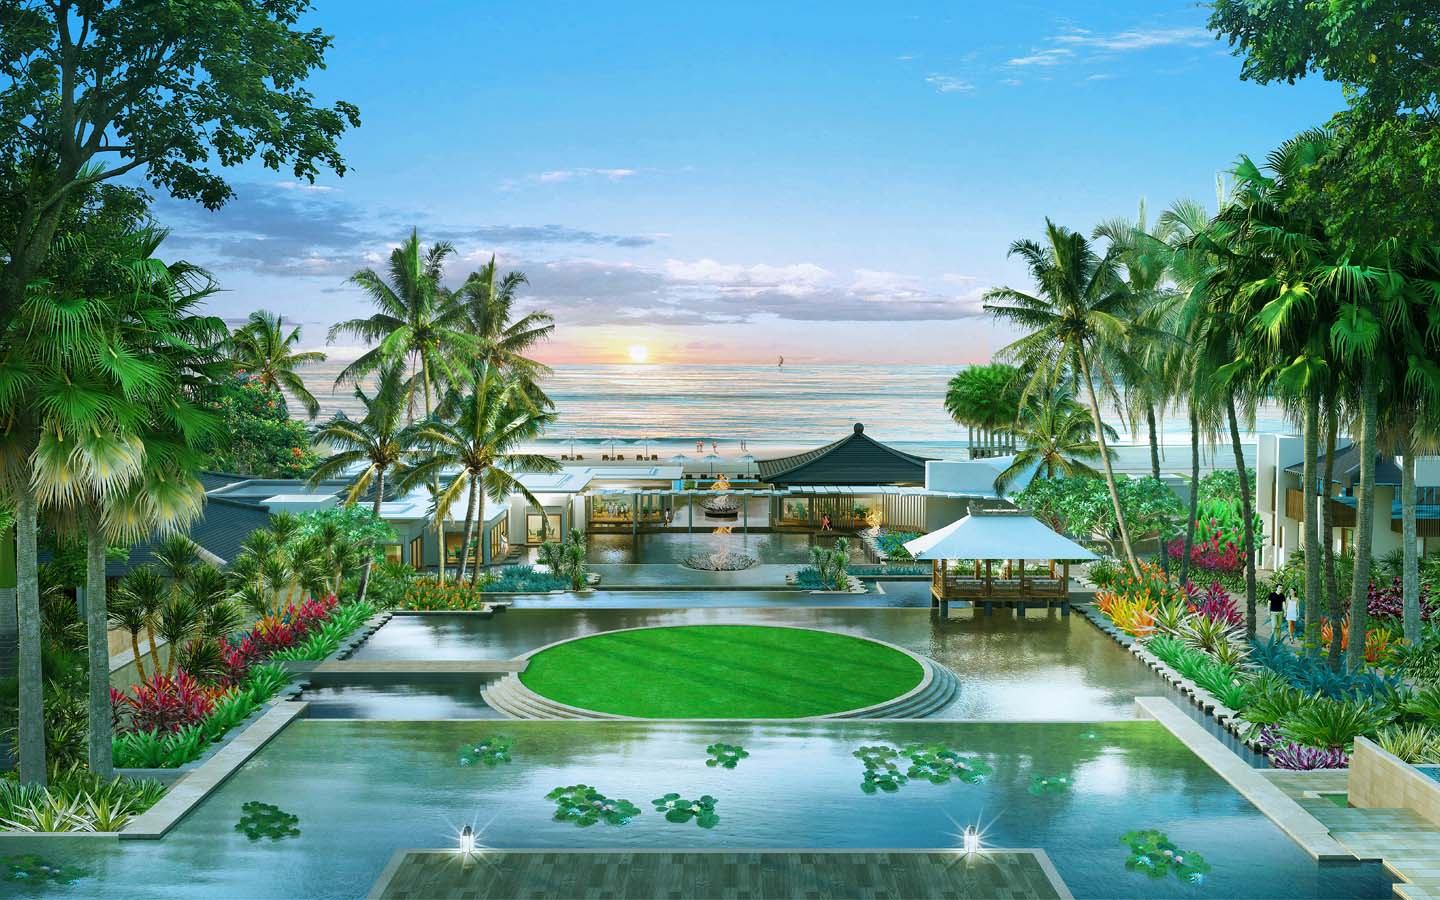 Tropical All Inclusive Resorts